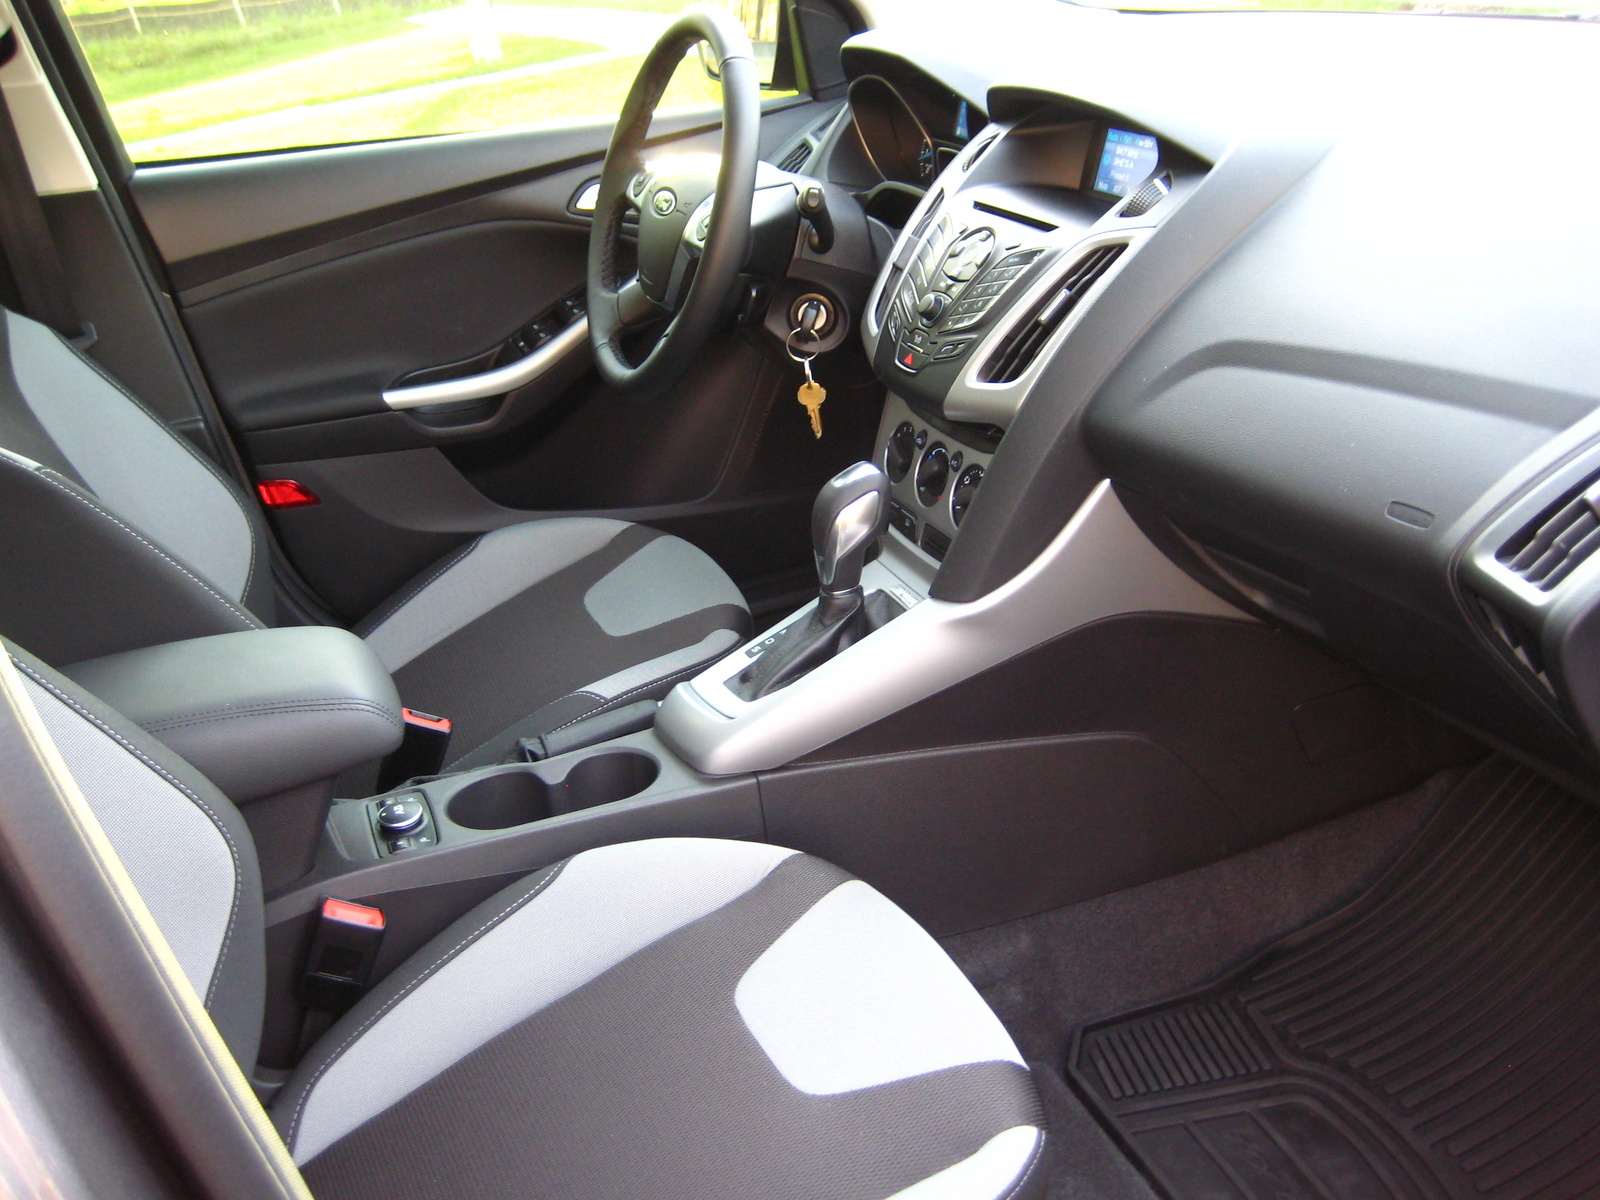 picture of 2012 ford focus se hatchback interior 1600x900 picture